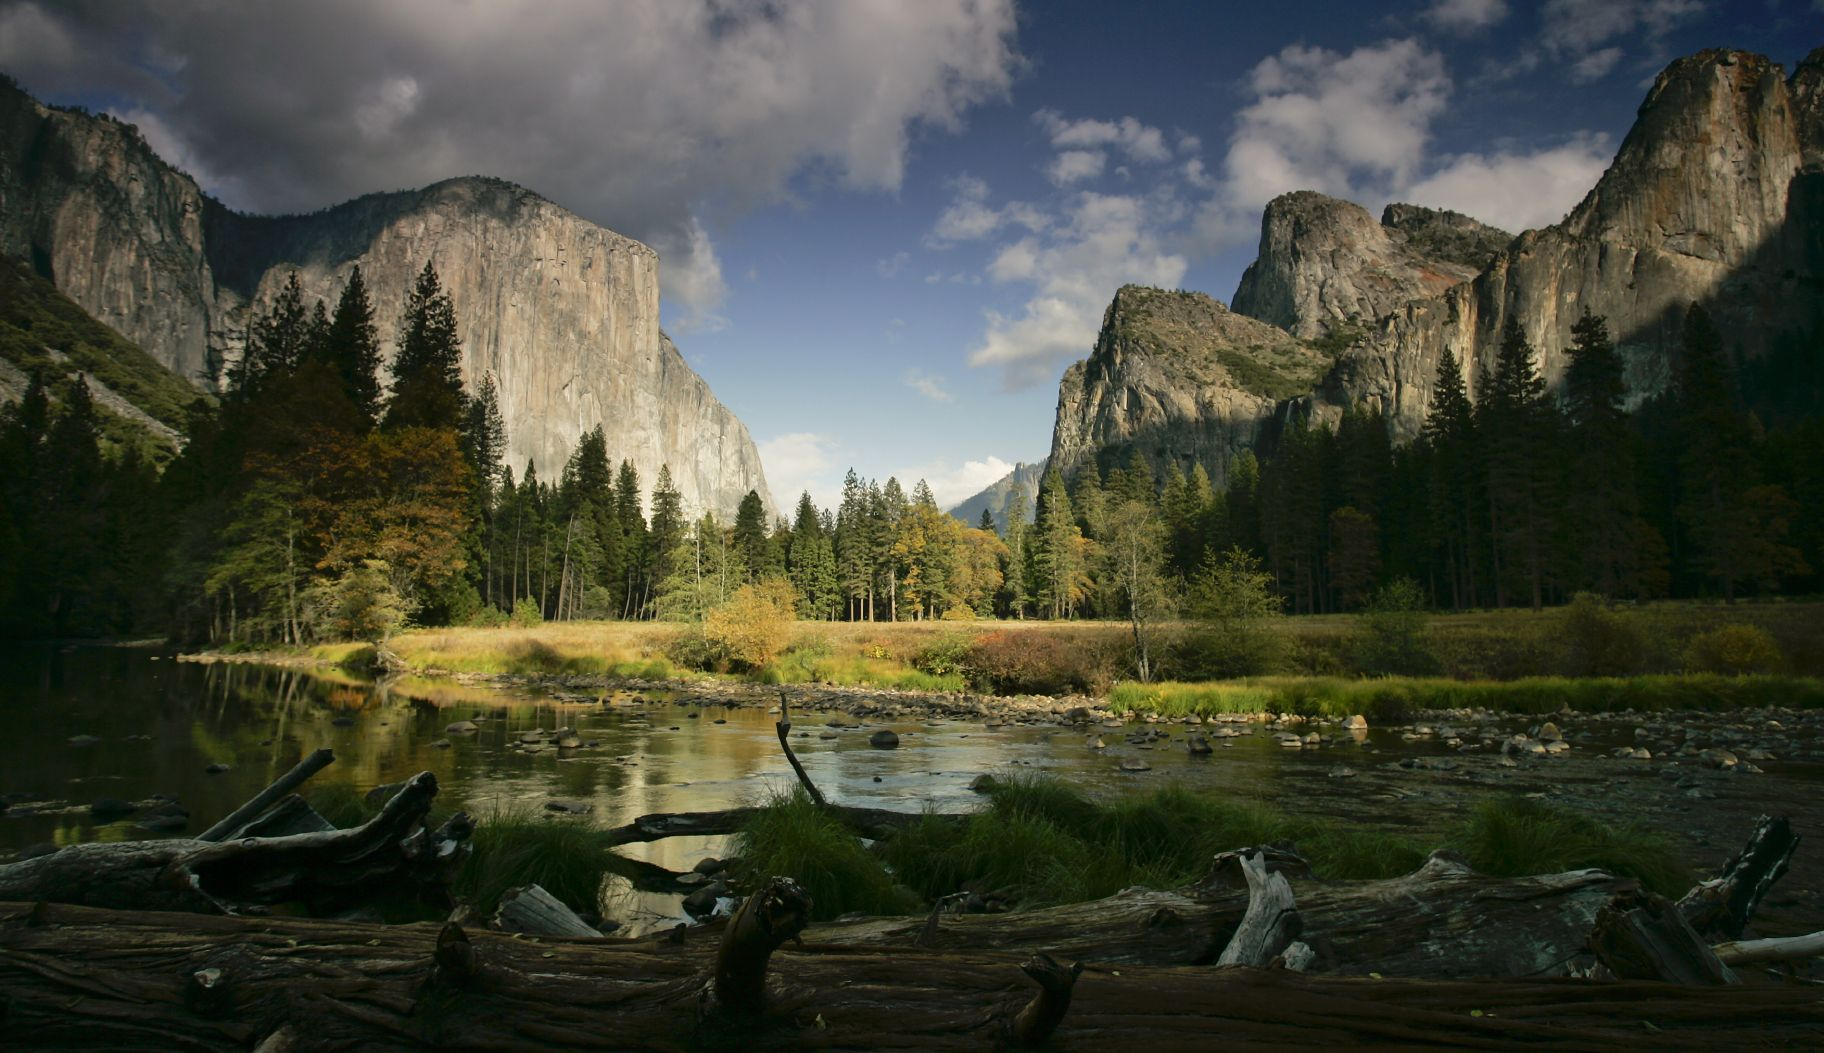 Pin by snowmoon and julie on nature | California mountains